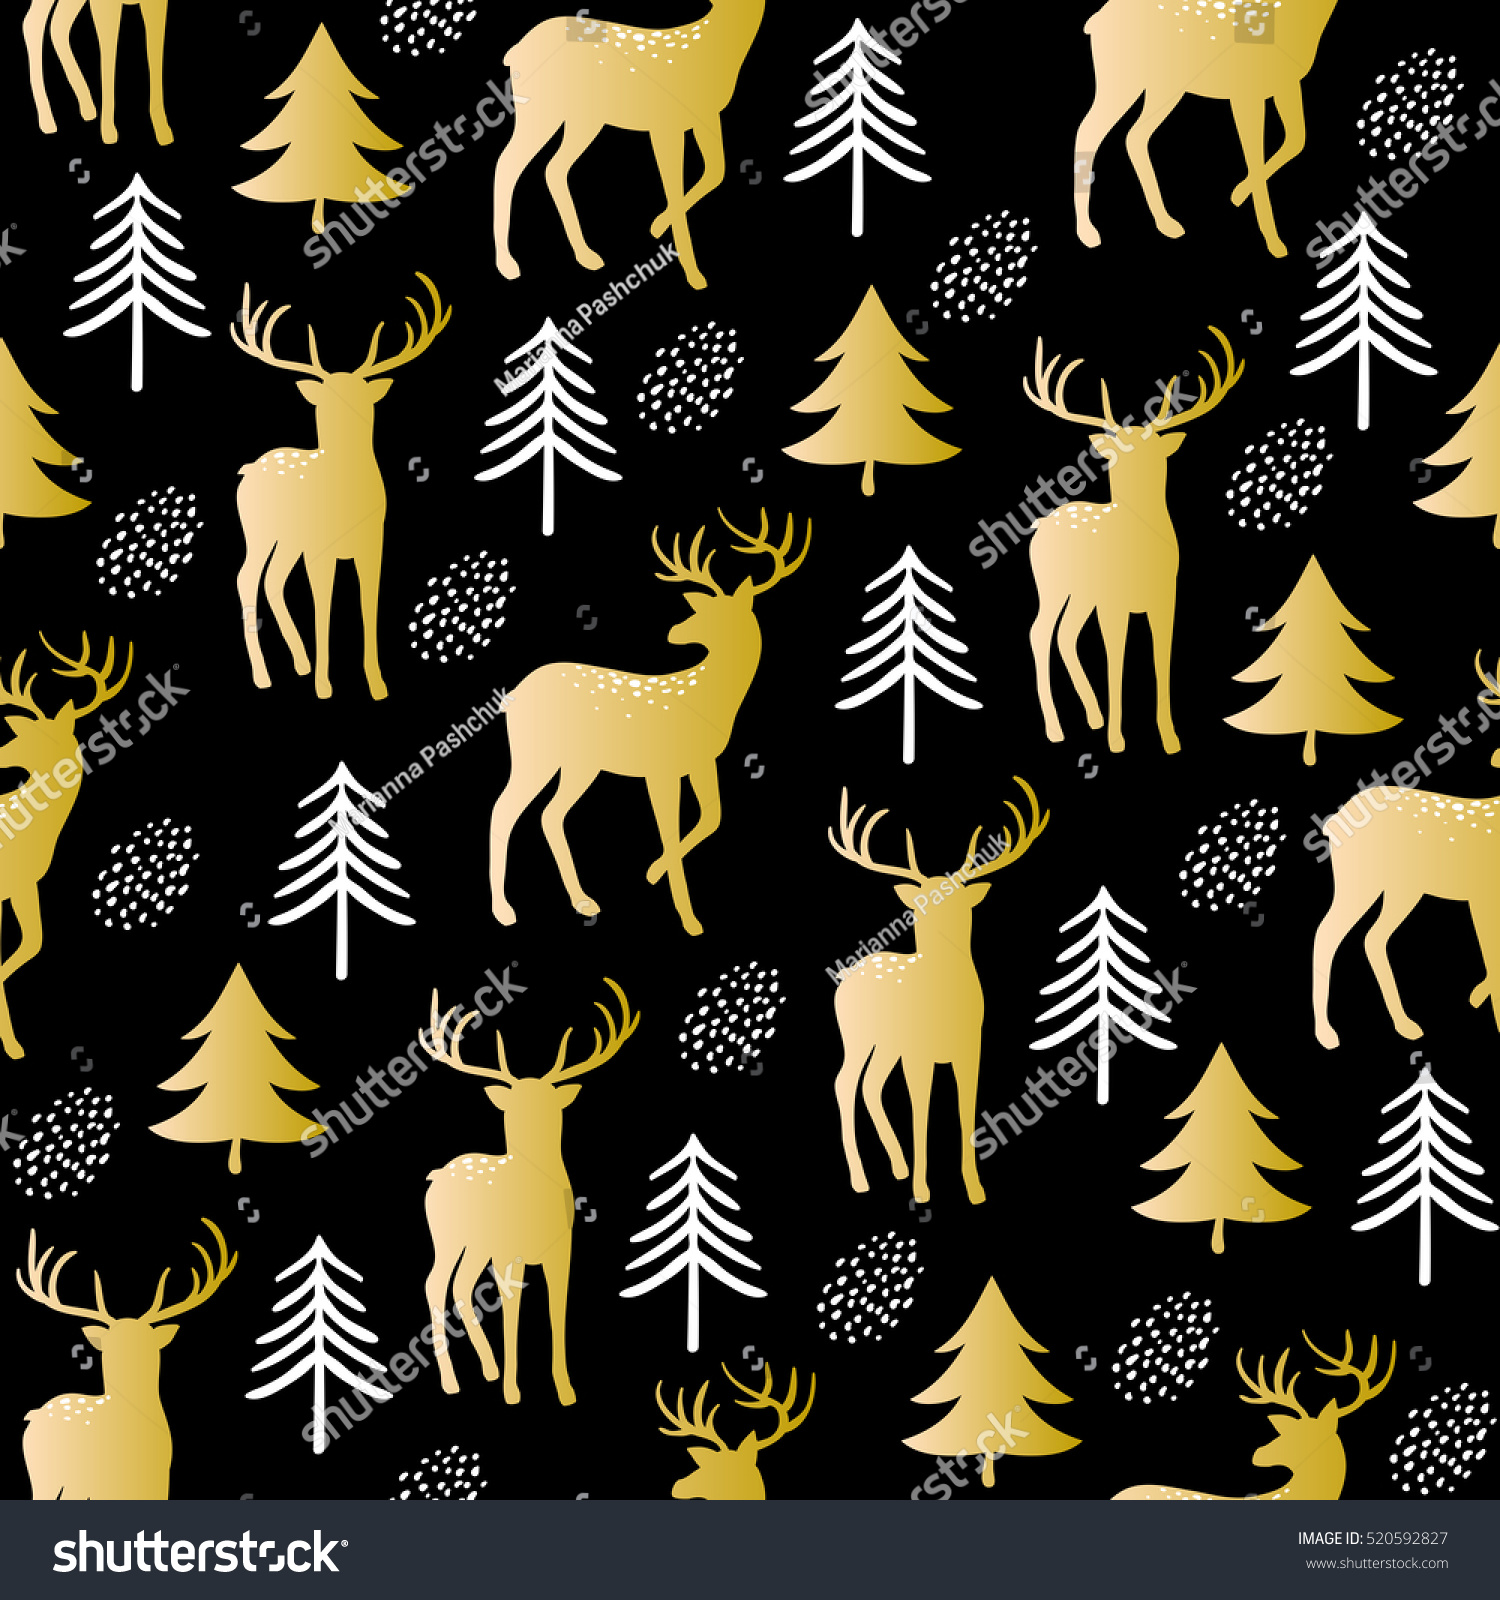 Seamless fir tree scandinavian pattern textile background wrapping - Christmas Seamless Pattern With Cute Golden Deer And Fir Trees On Black Background Vector Print